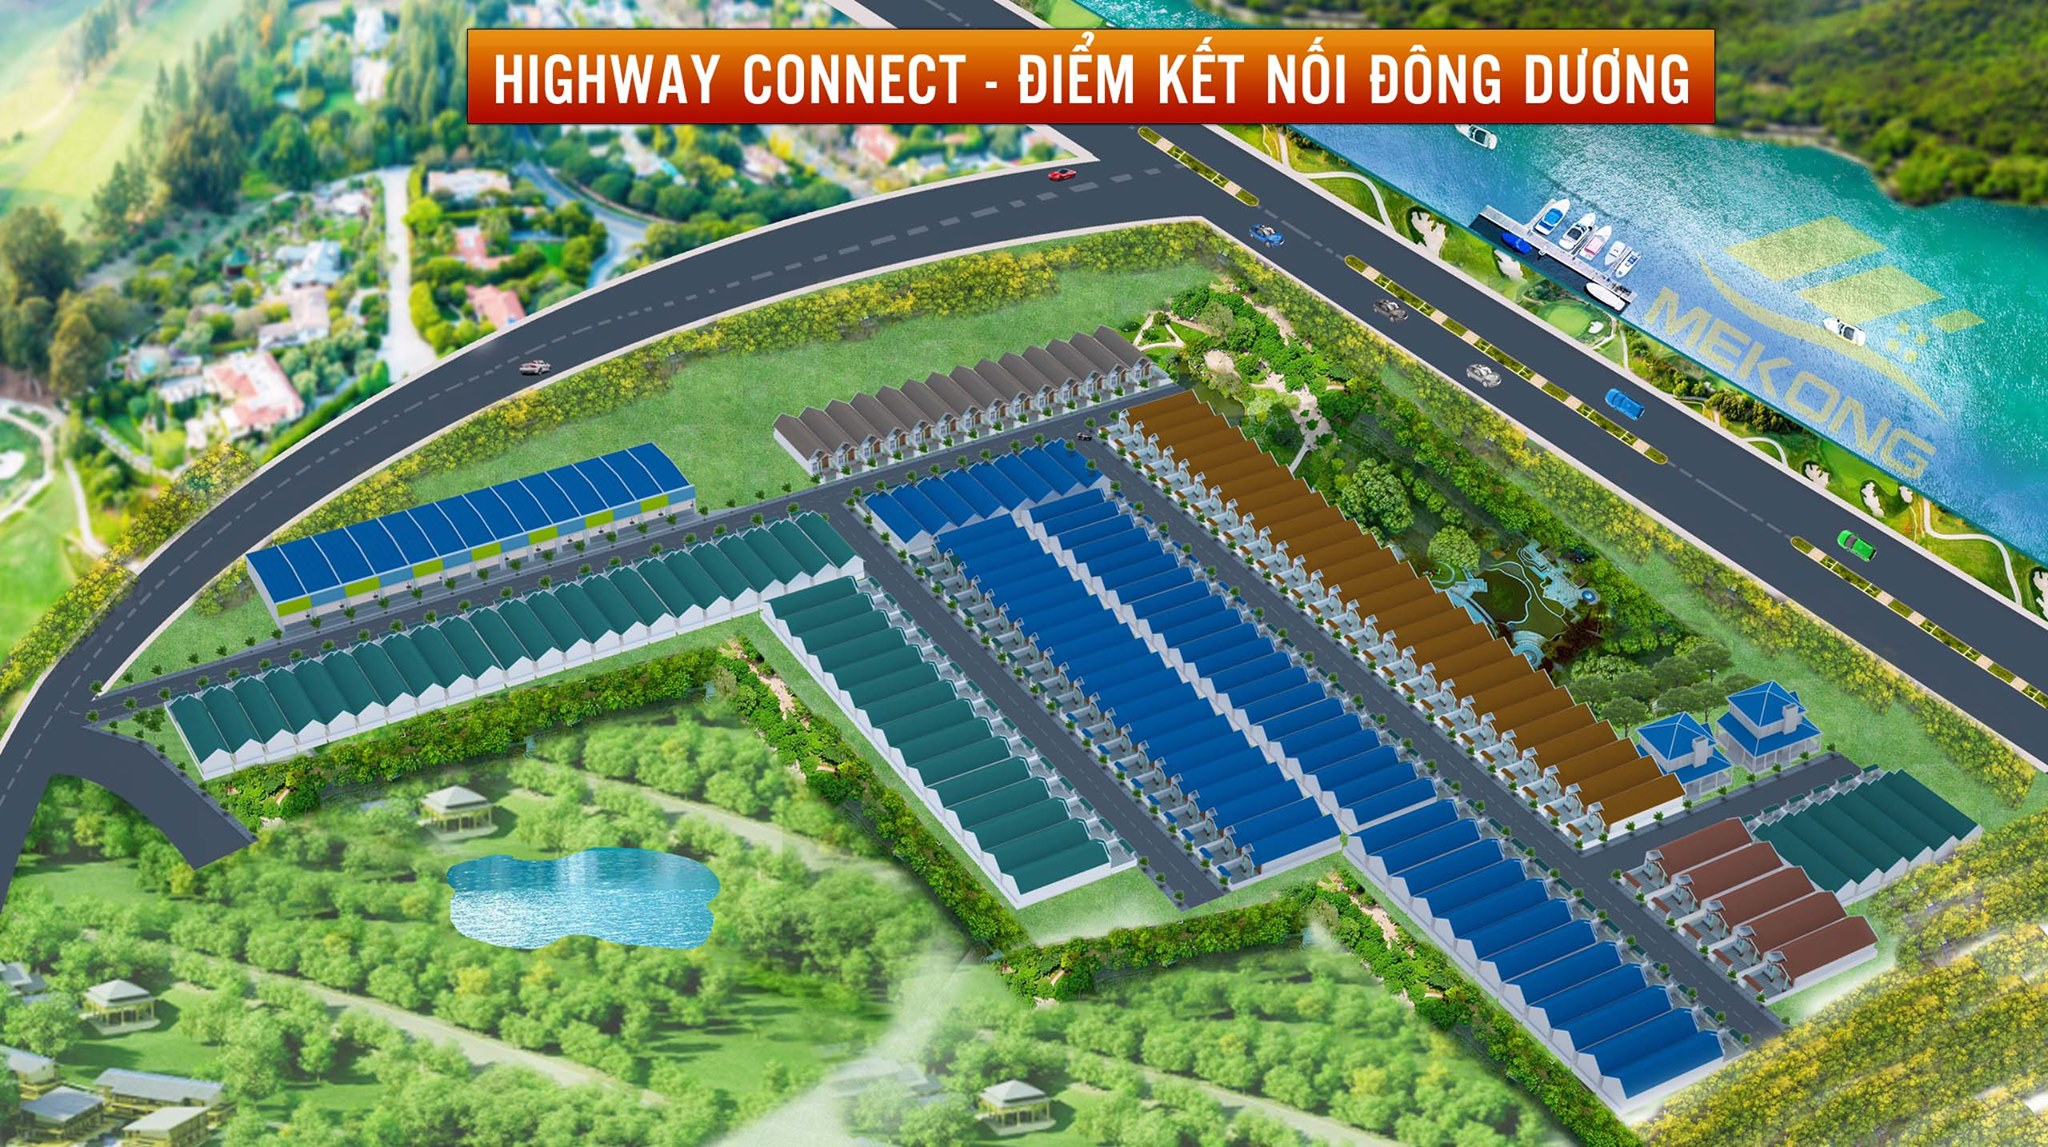 HIGHWAY CONNECT